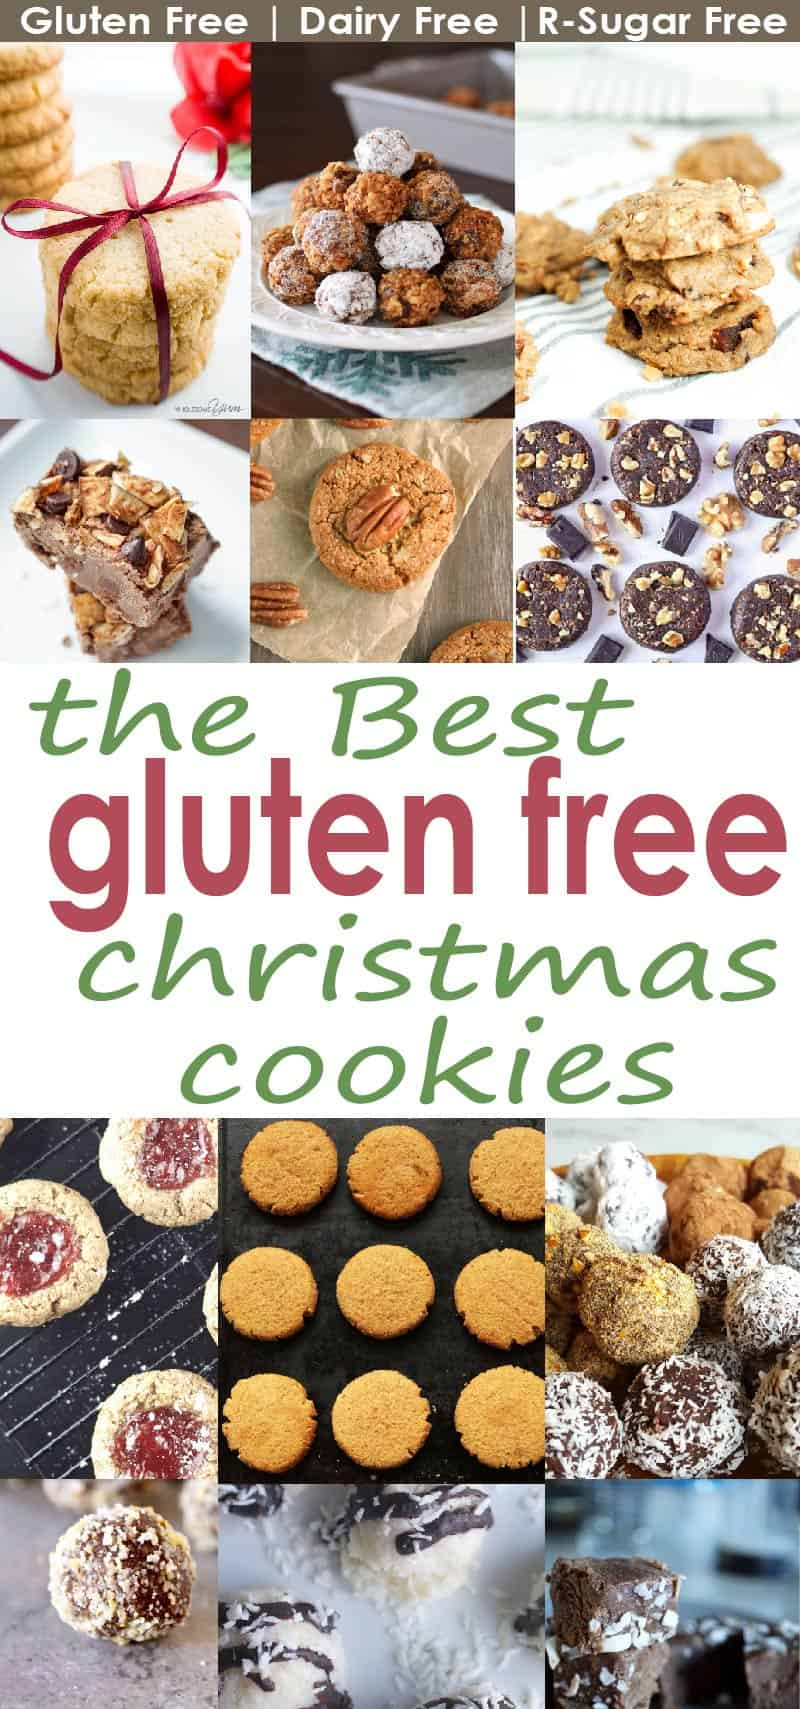 The Best Gluten Free Christmas Cookies To Impress Your Favorite